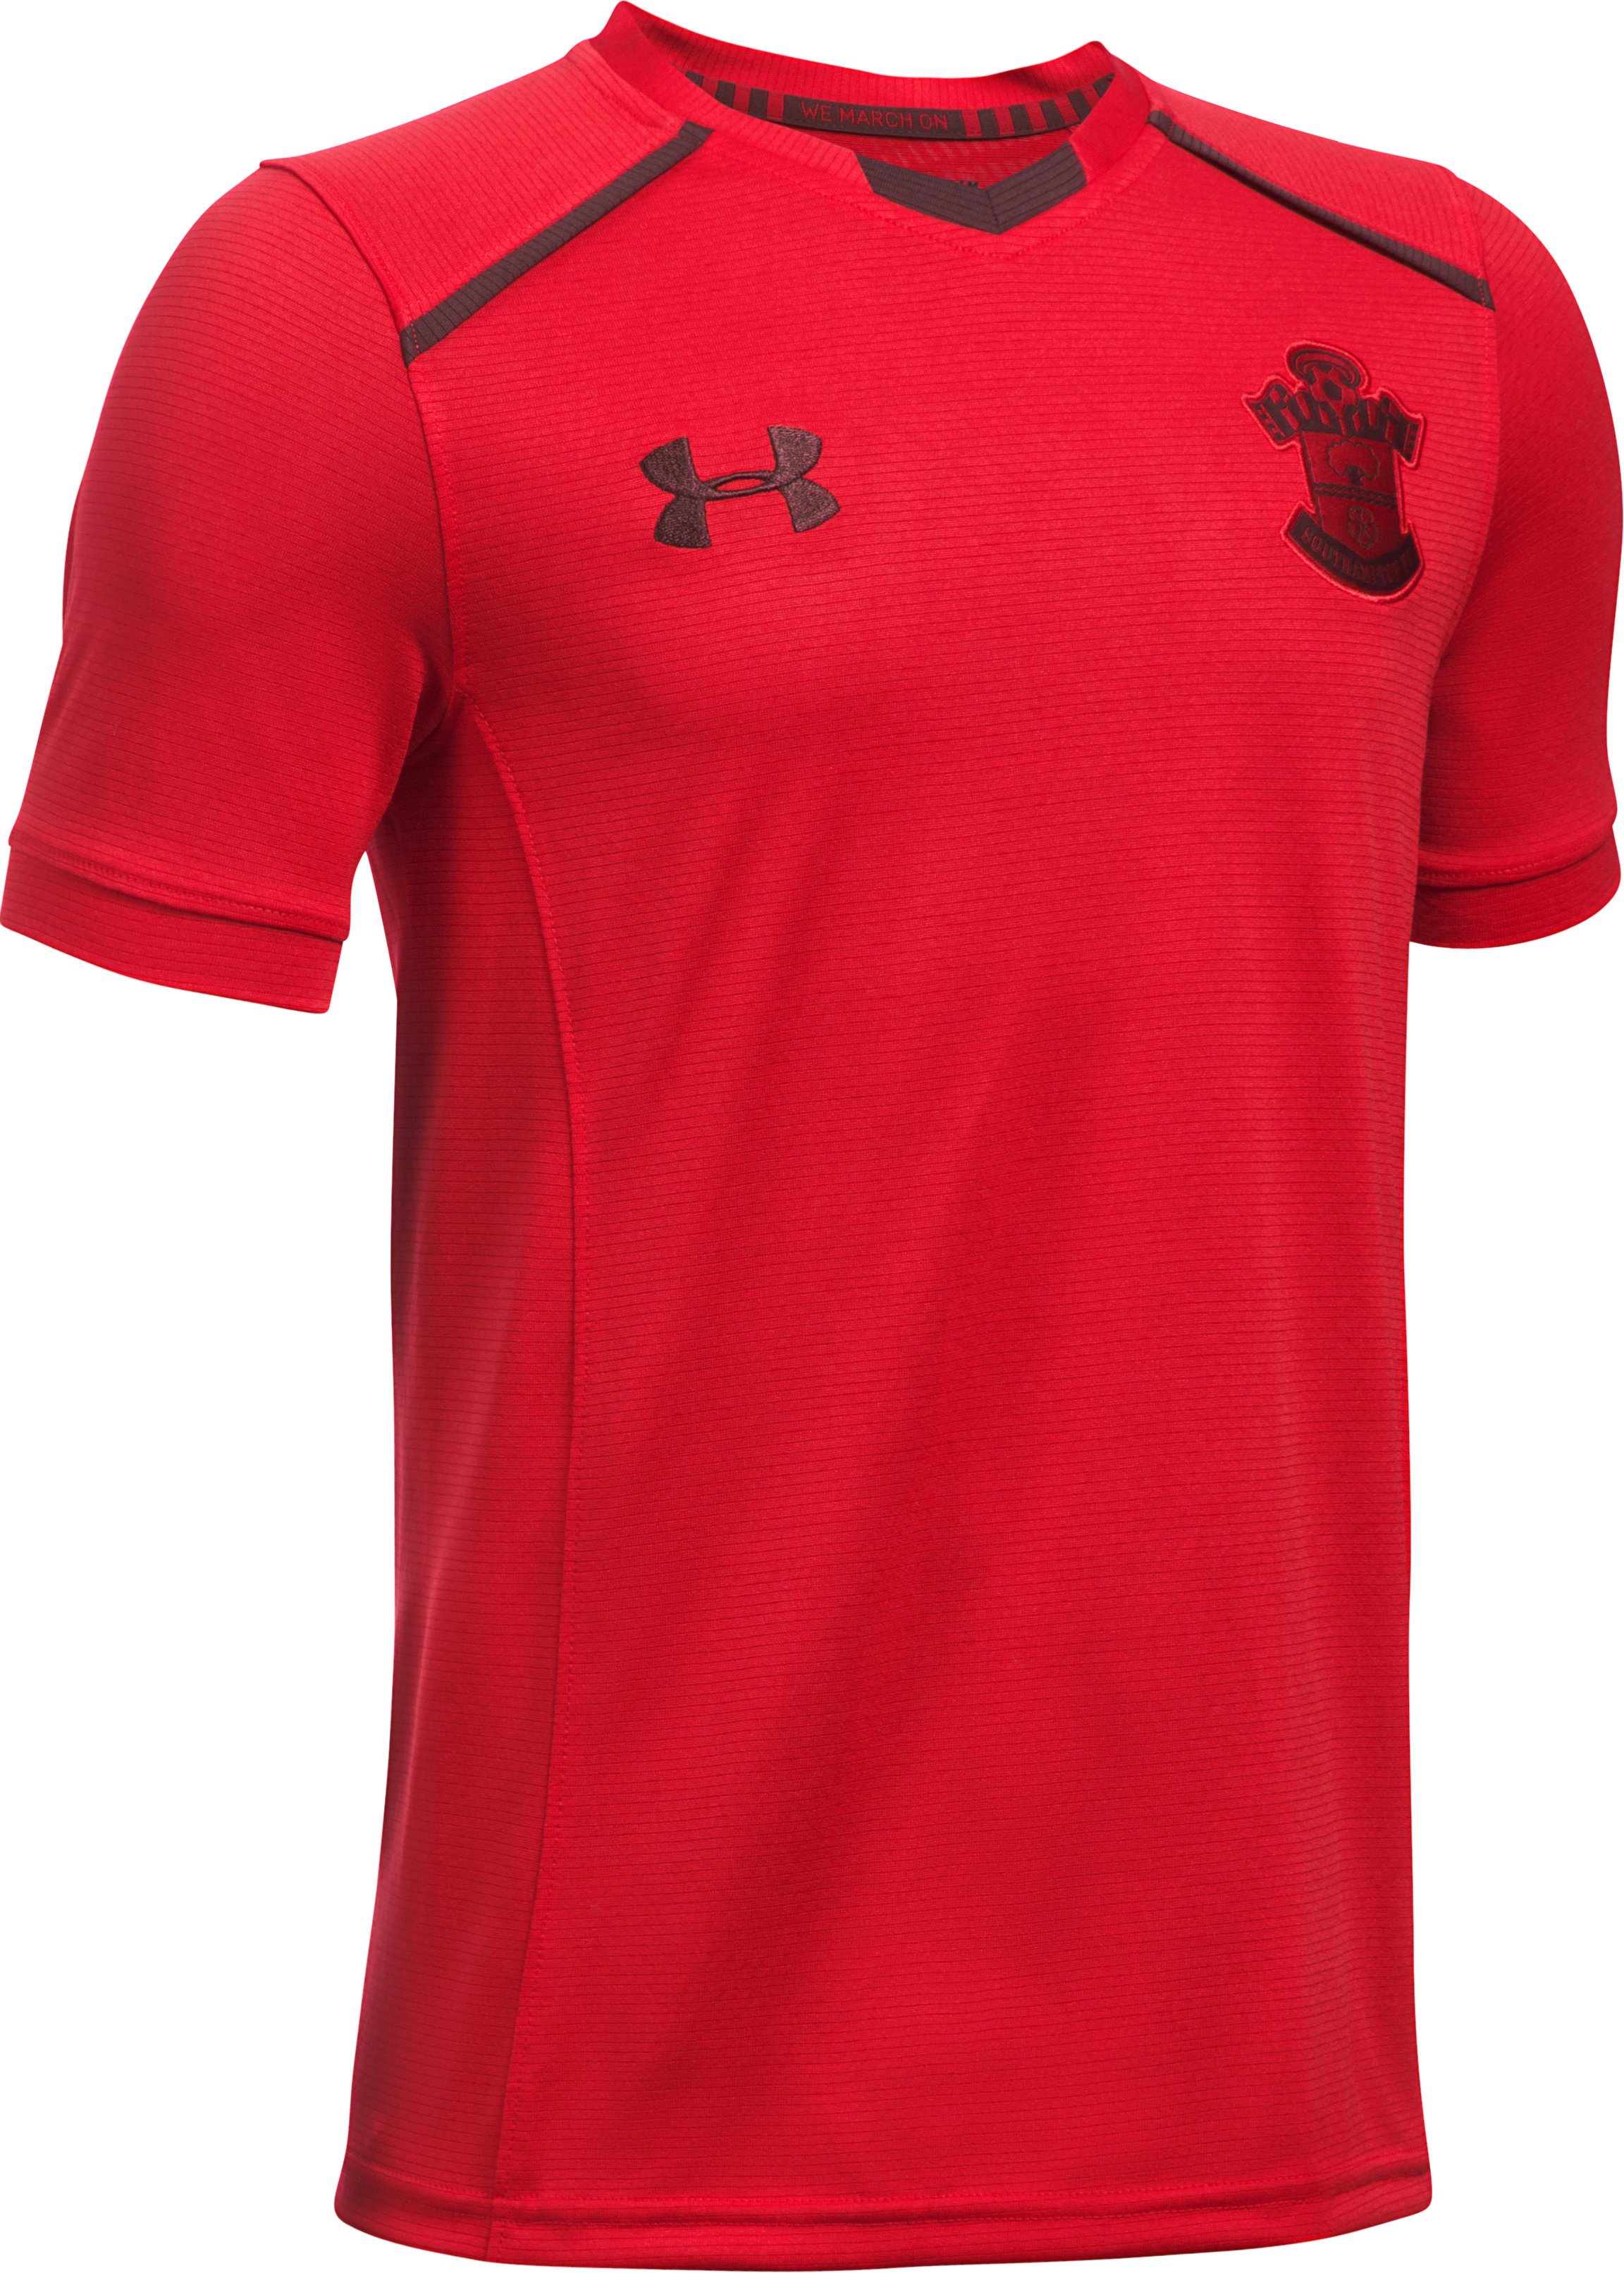 Kids' Southampton Training Short Sleeve, Red